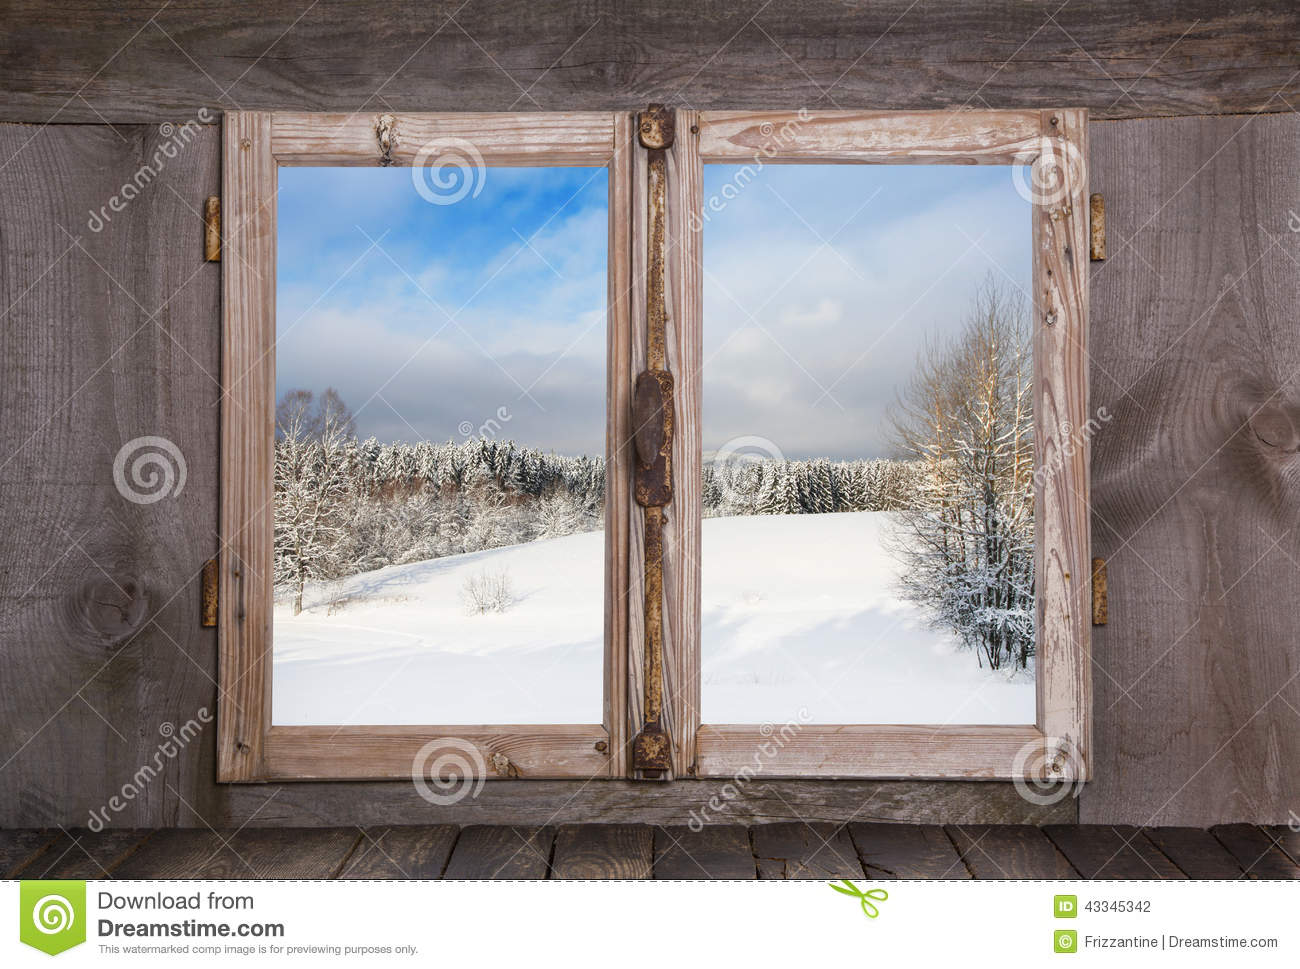 Snowy Winter Landscape View Out Of An Old Rustic Wooden